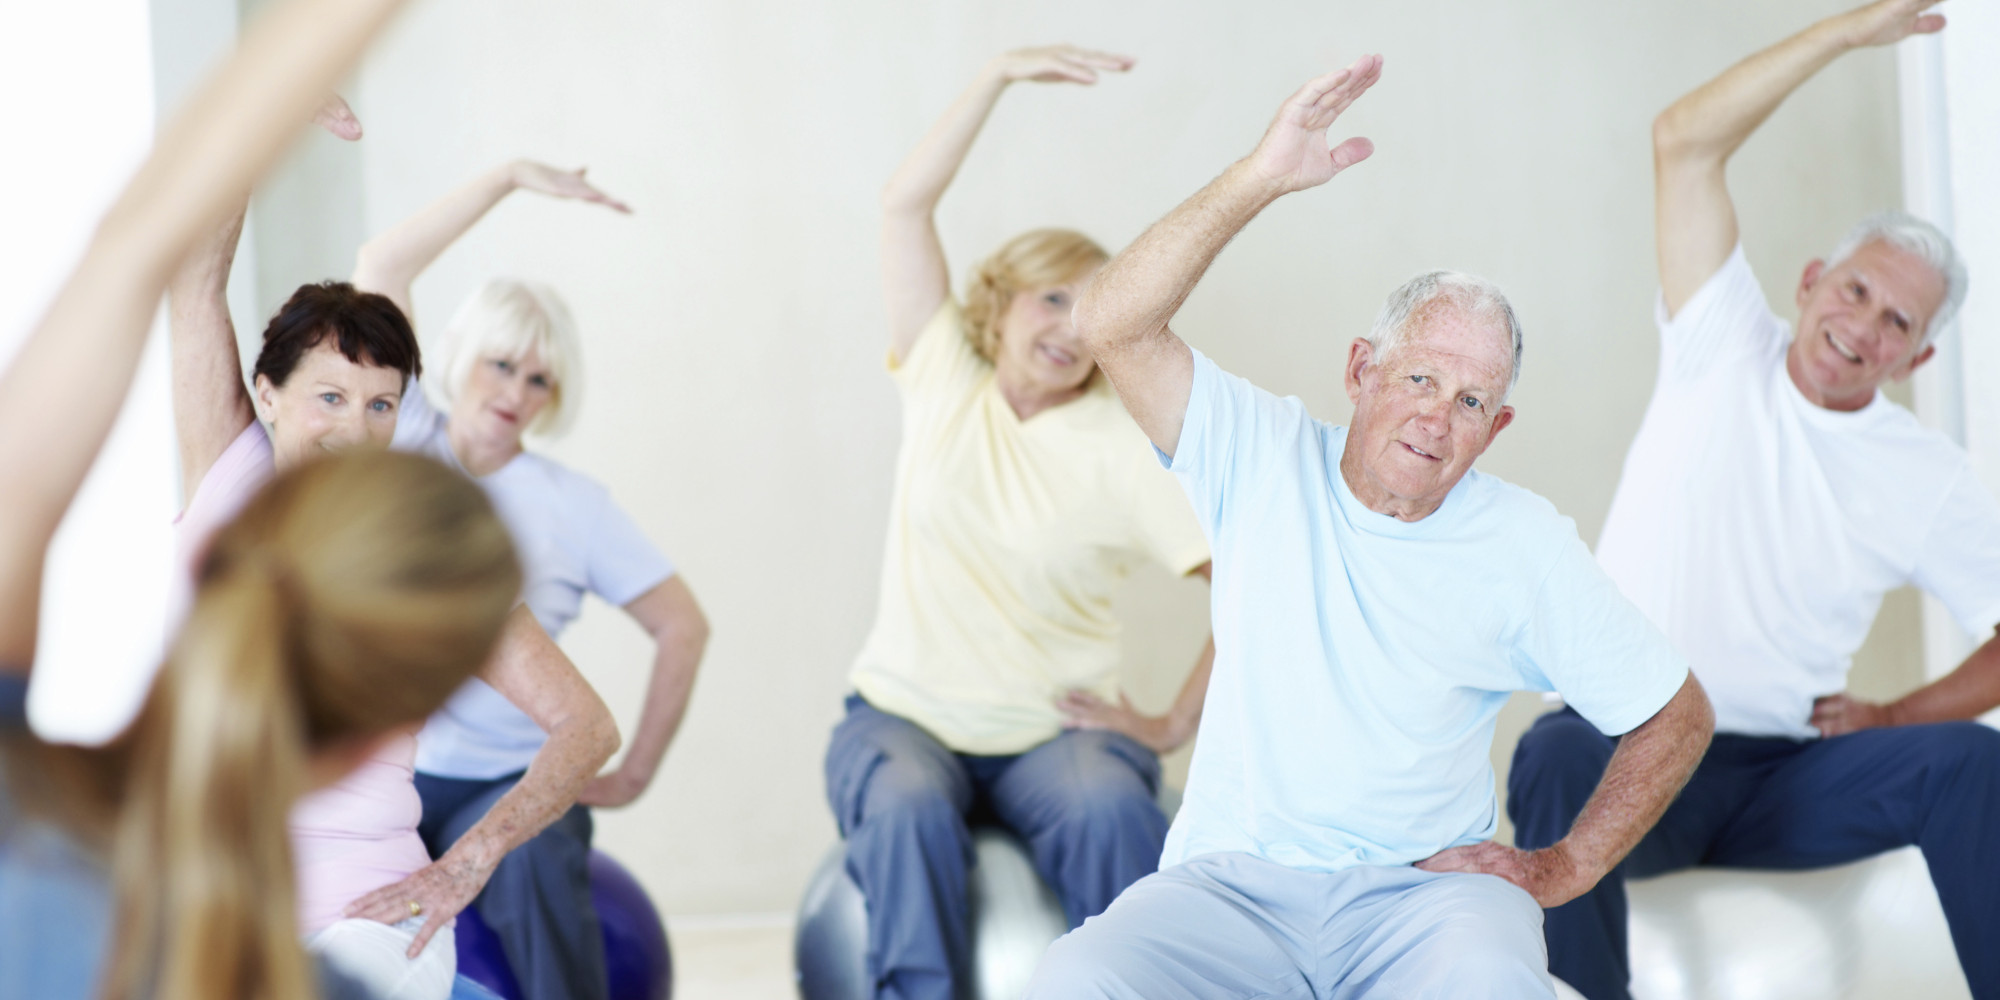 Seniors Exercise in Chairs Google image from http://www.inspirationalfurniture.com/singleimages/senior-citizen-exercises-vpeced4w0rrehjlp.jpg